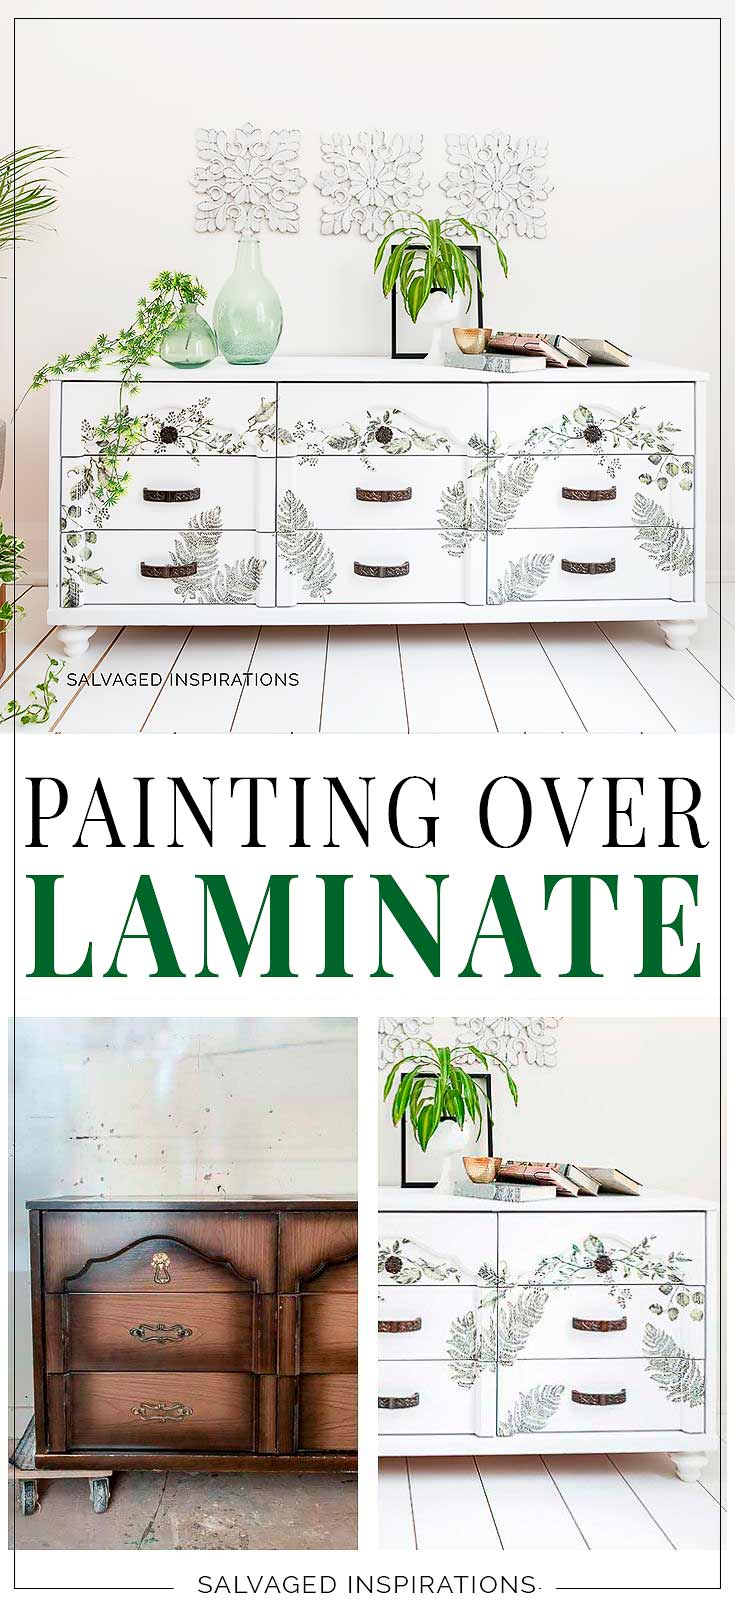 Painting Over Laminate | Salvaged Inspirations